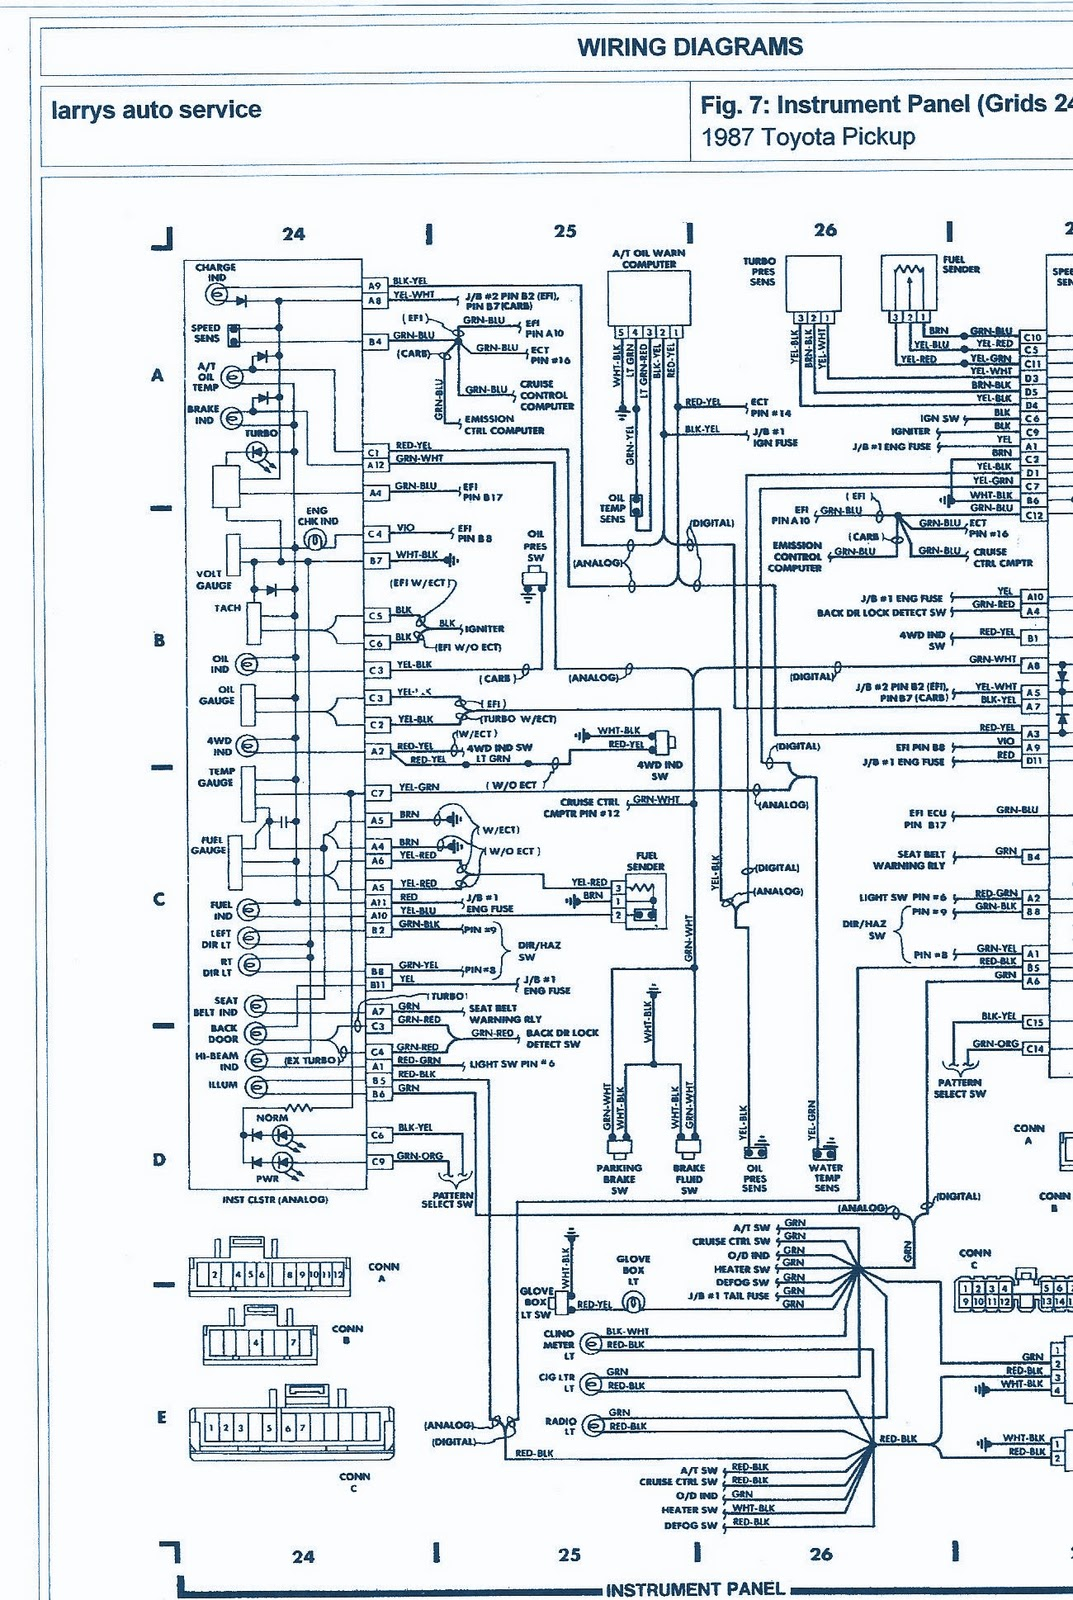 22re wiring harness diagram